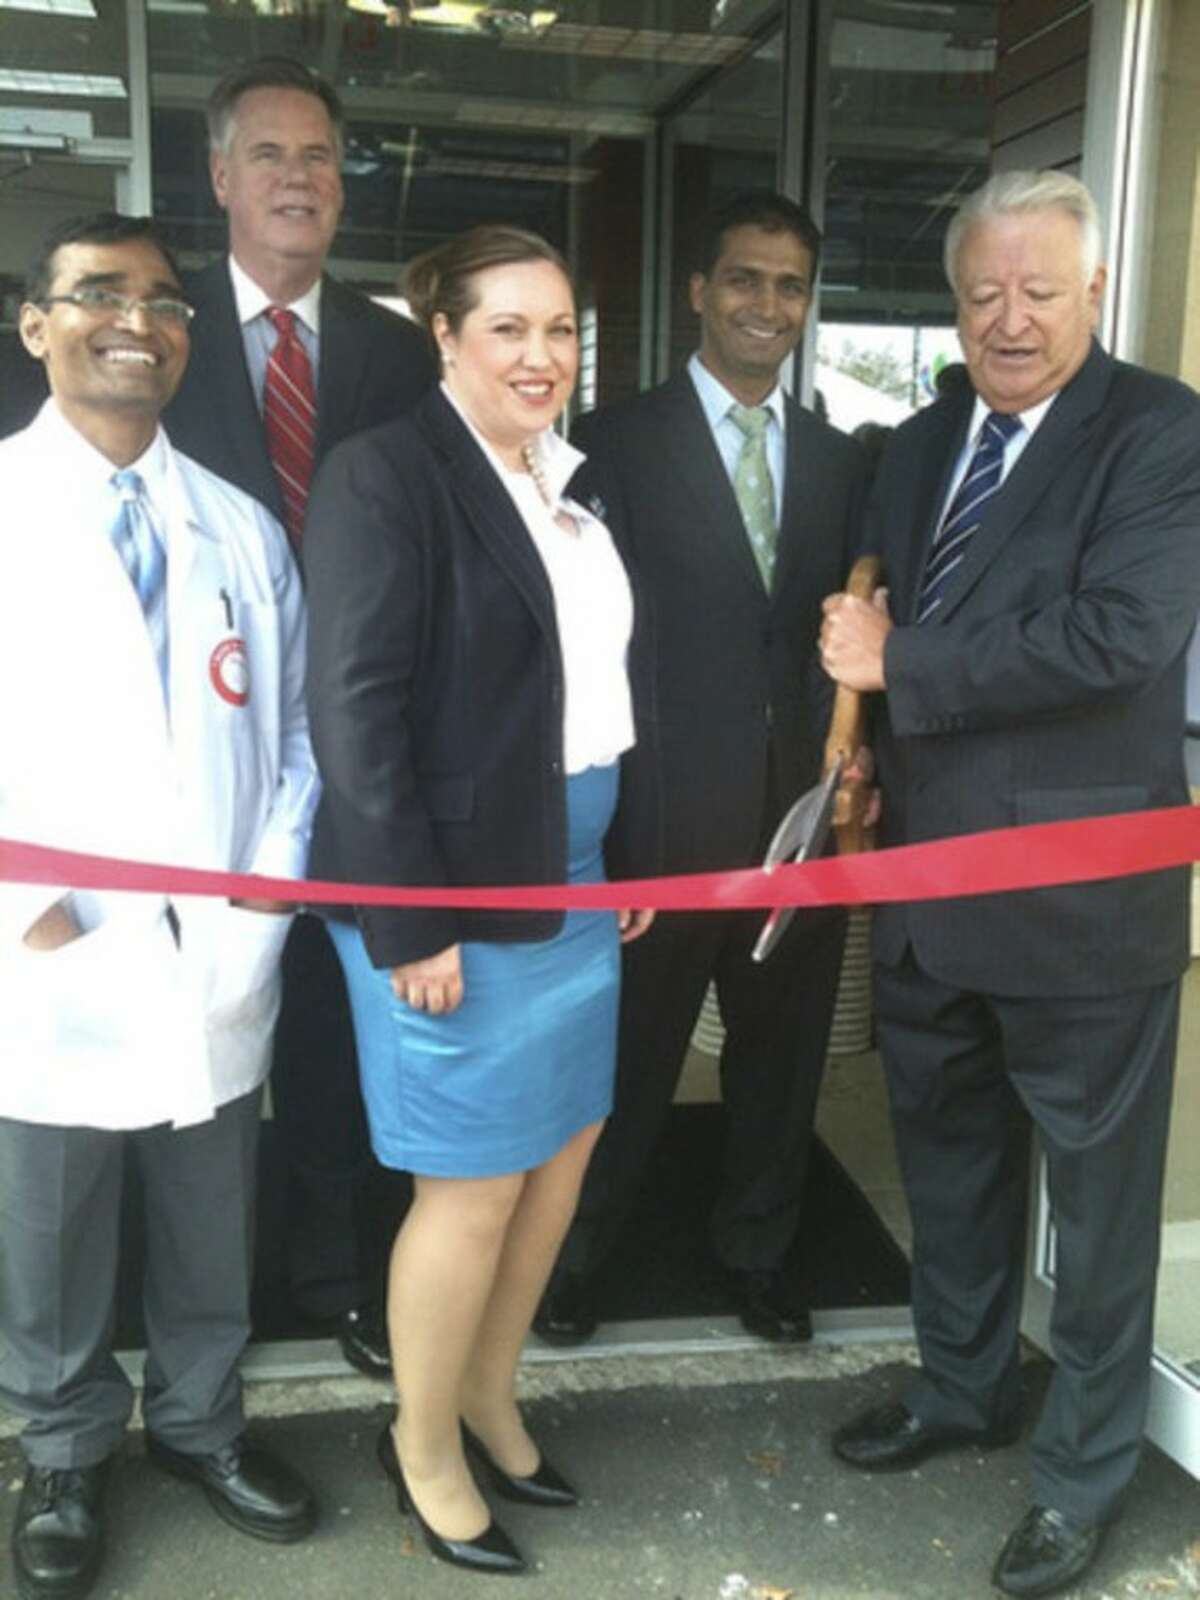 Hour photo Ribbon-cutting ceremony for Hancock Pharmacy on Connecticut Avenue.